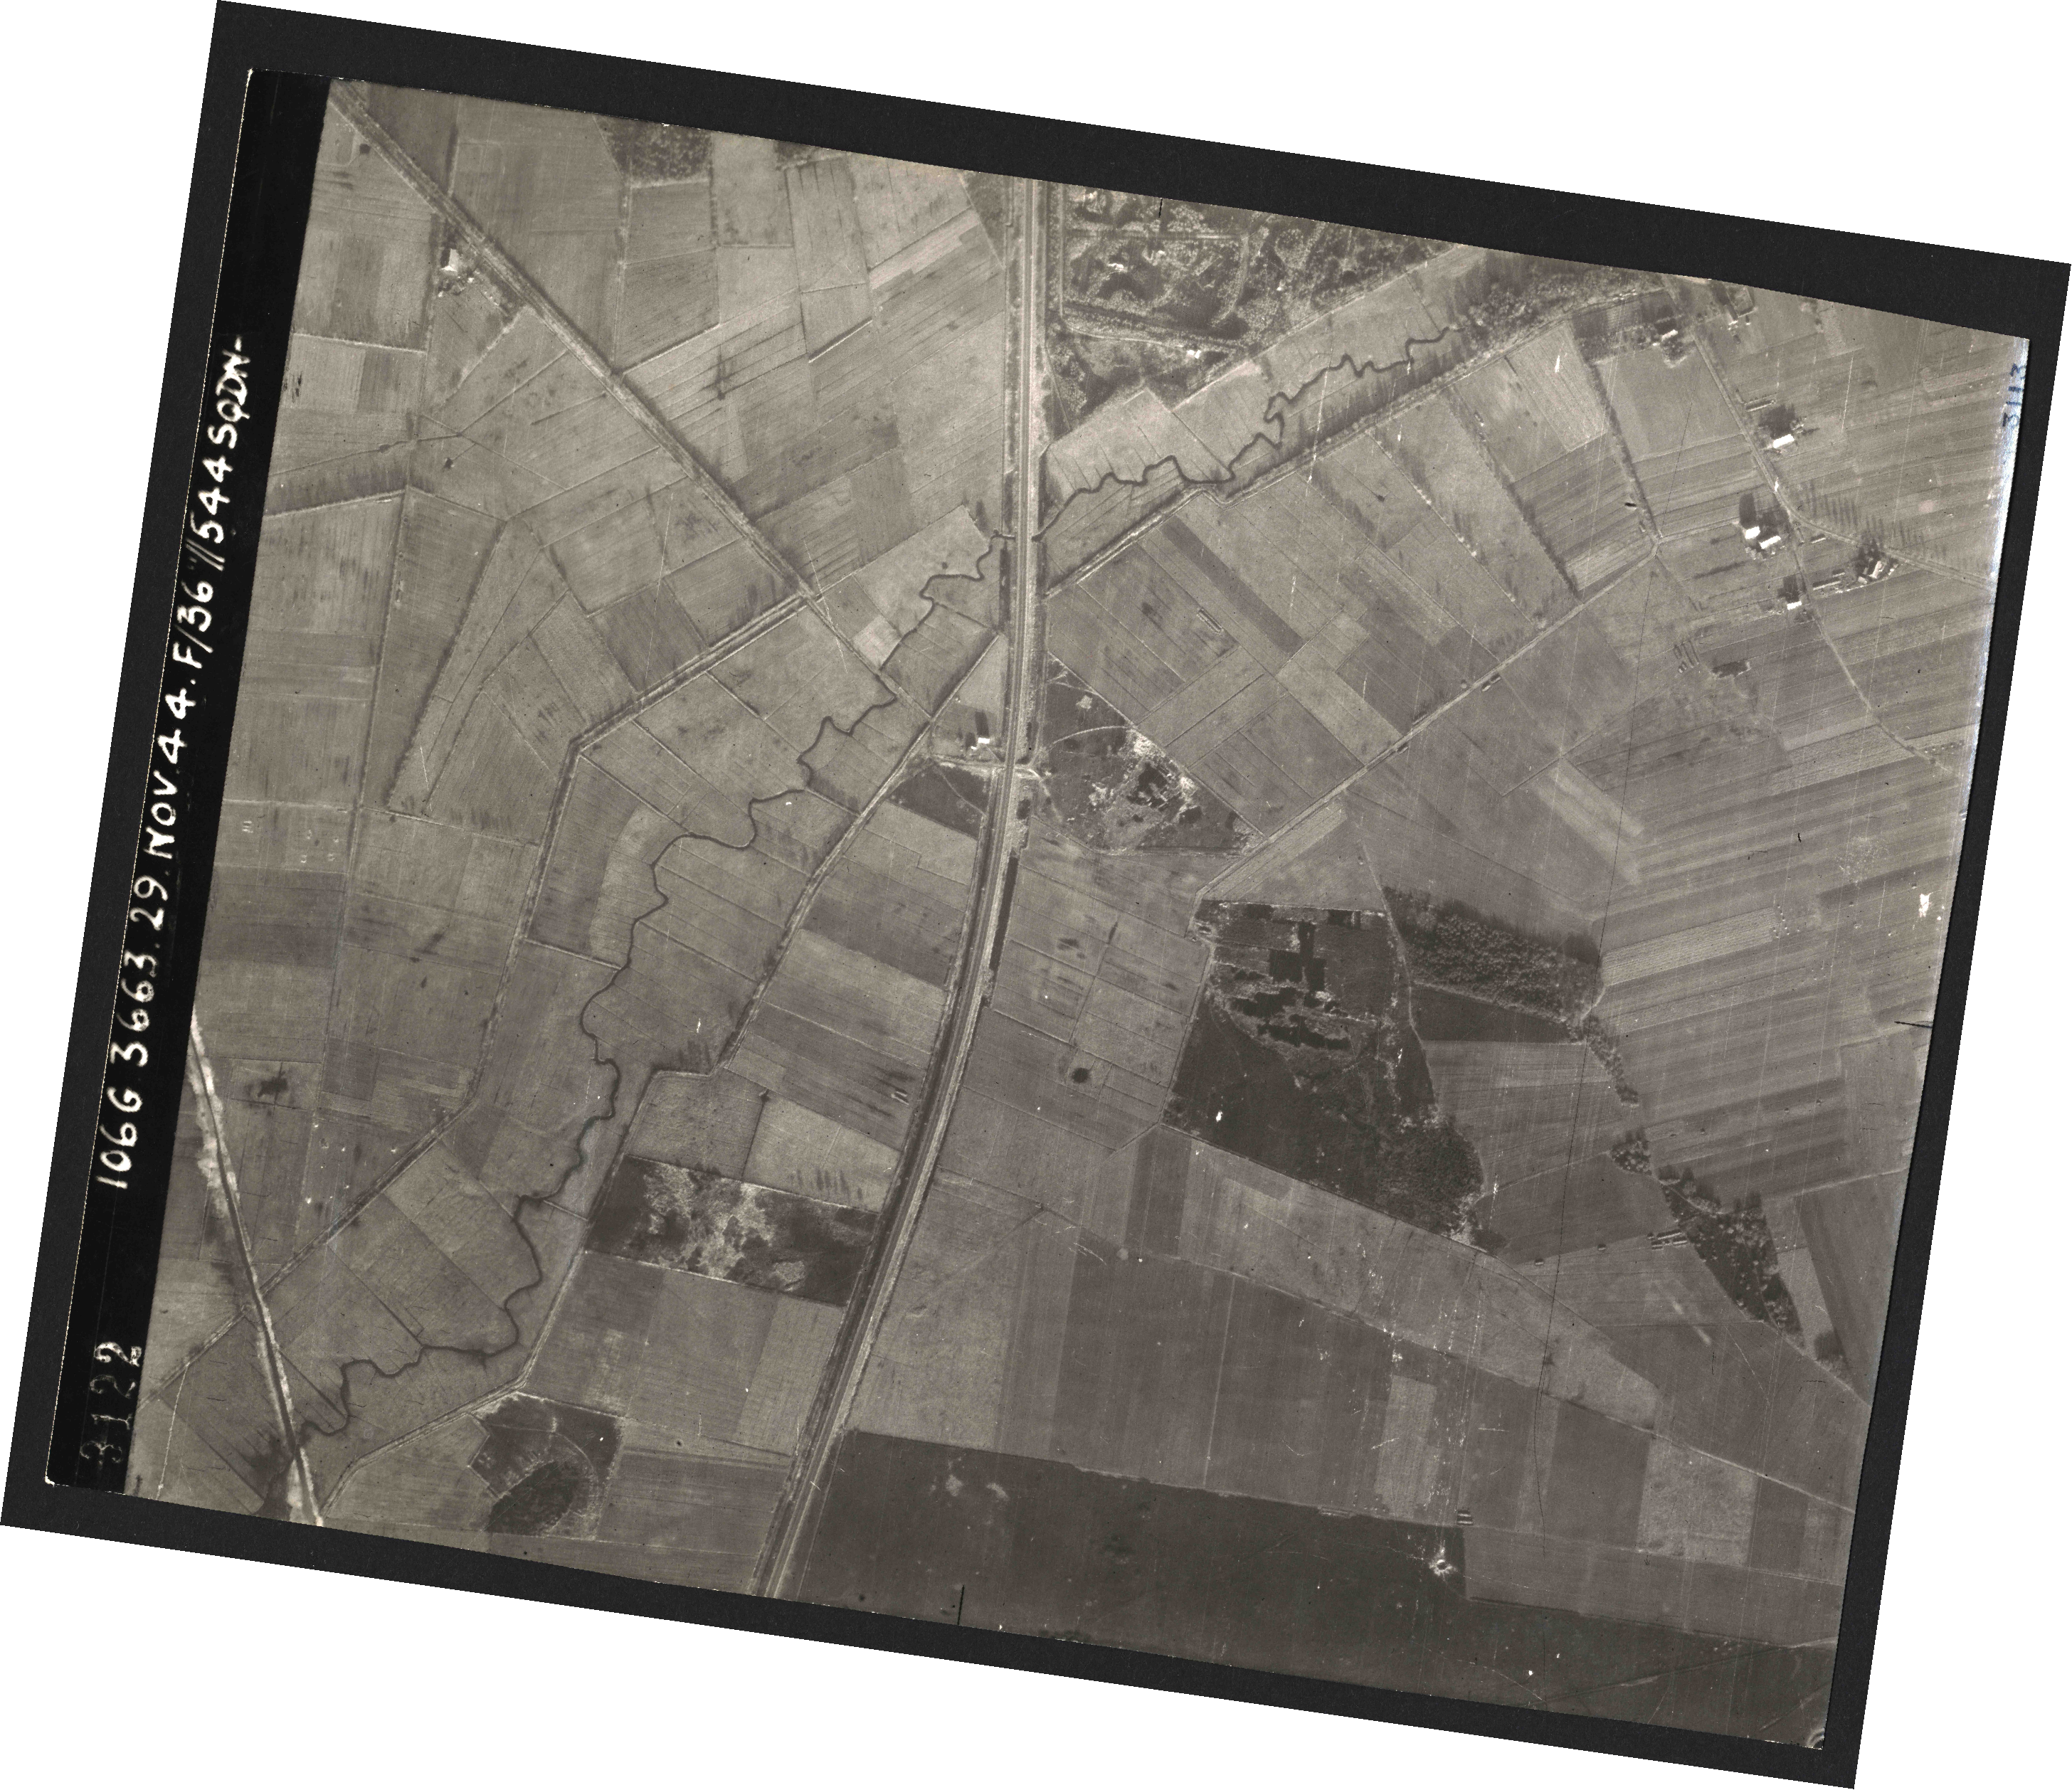 Collection RAF aerial photos 1940-1945 - flight 025, run 01, photo 3122